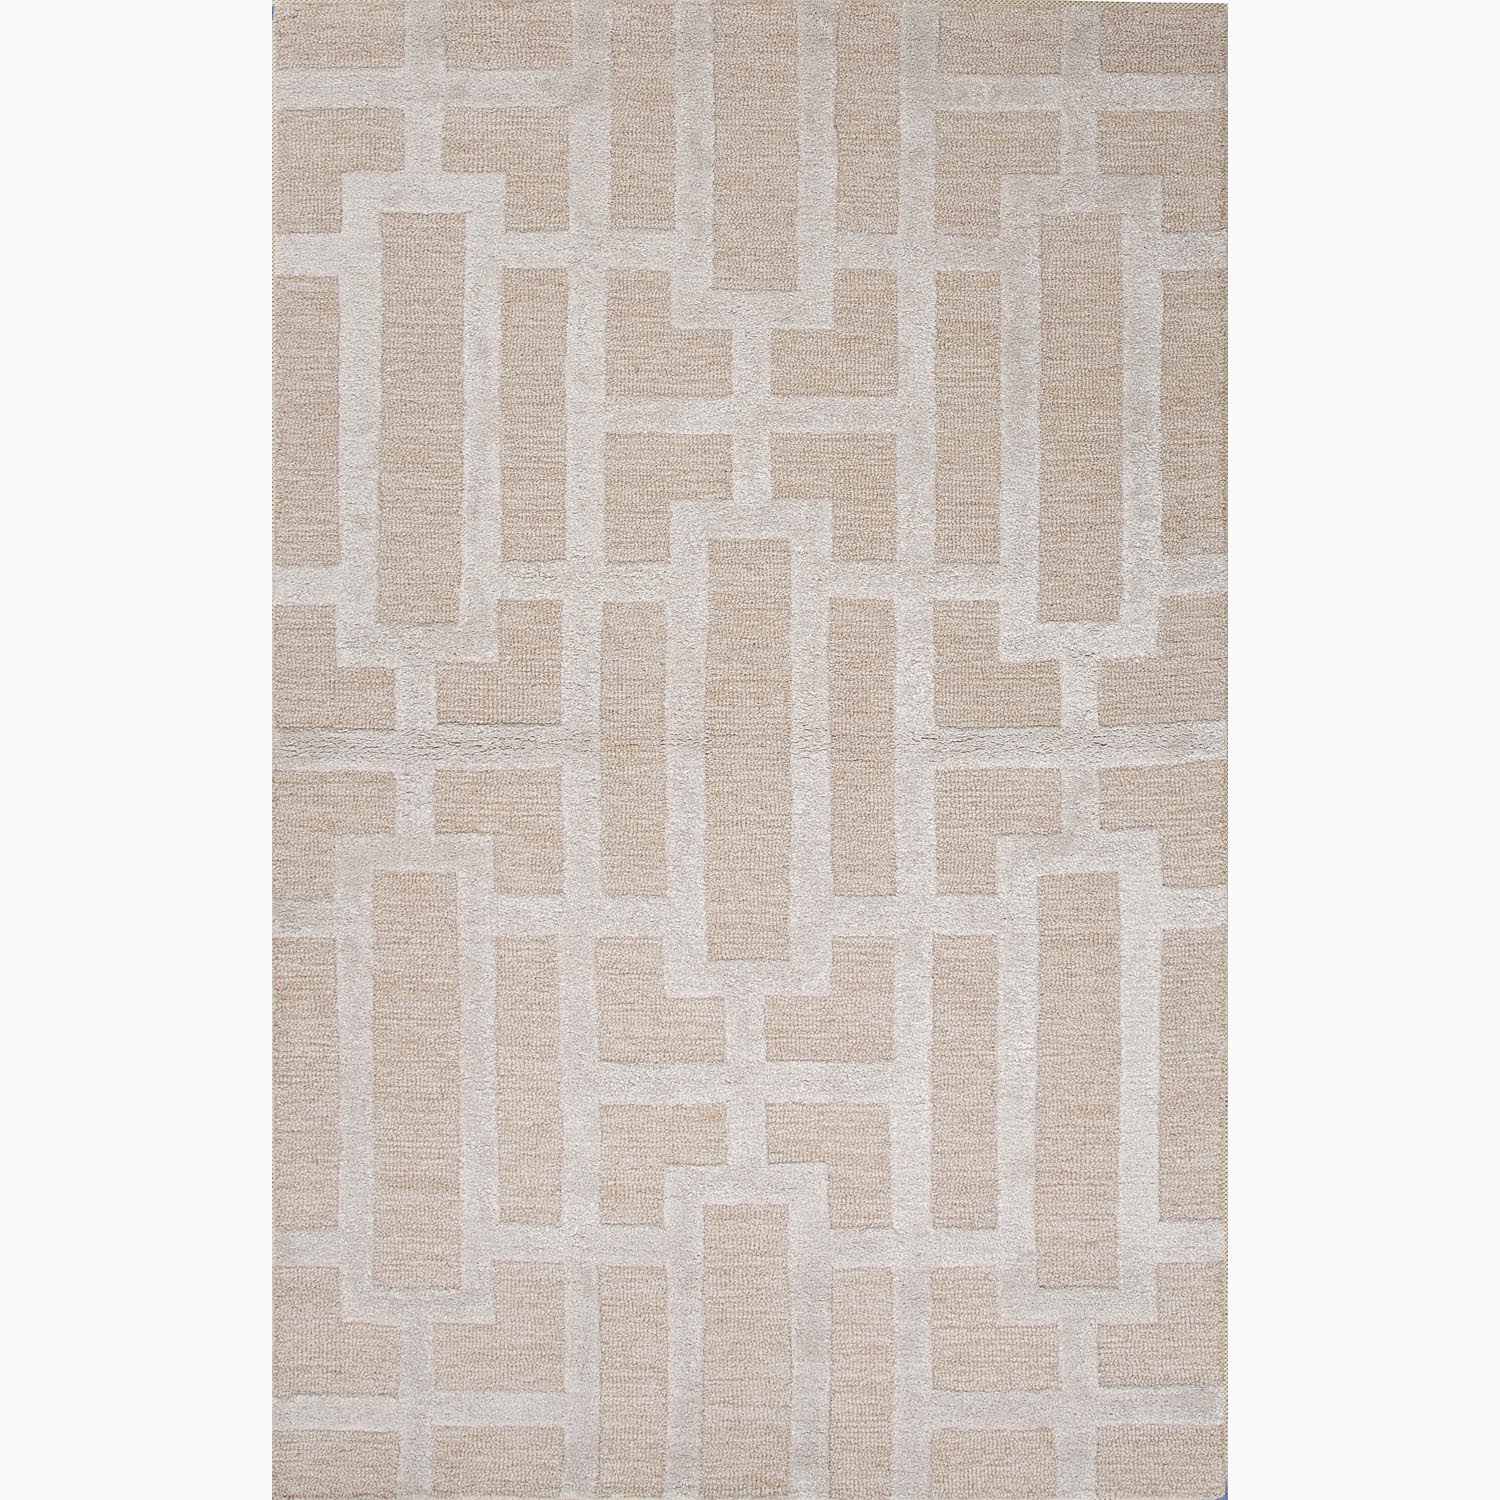 Handmade Geometric Pattern Taupe/ Gray Wool/ Art Silk Rug (9'6 x 13'6)